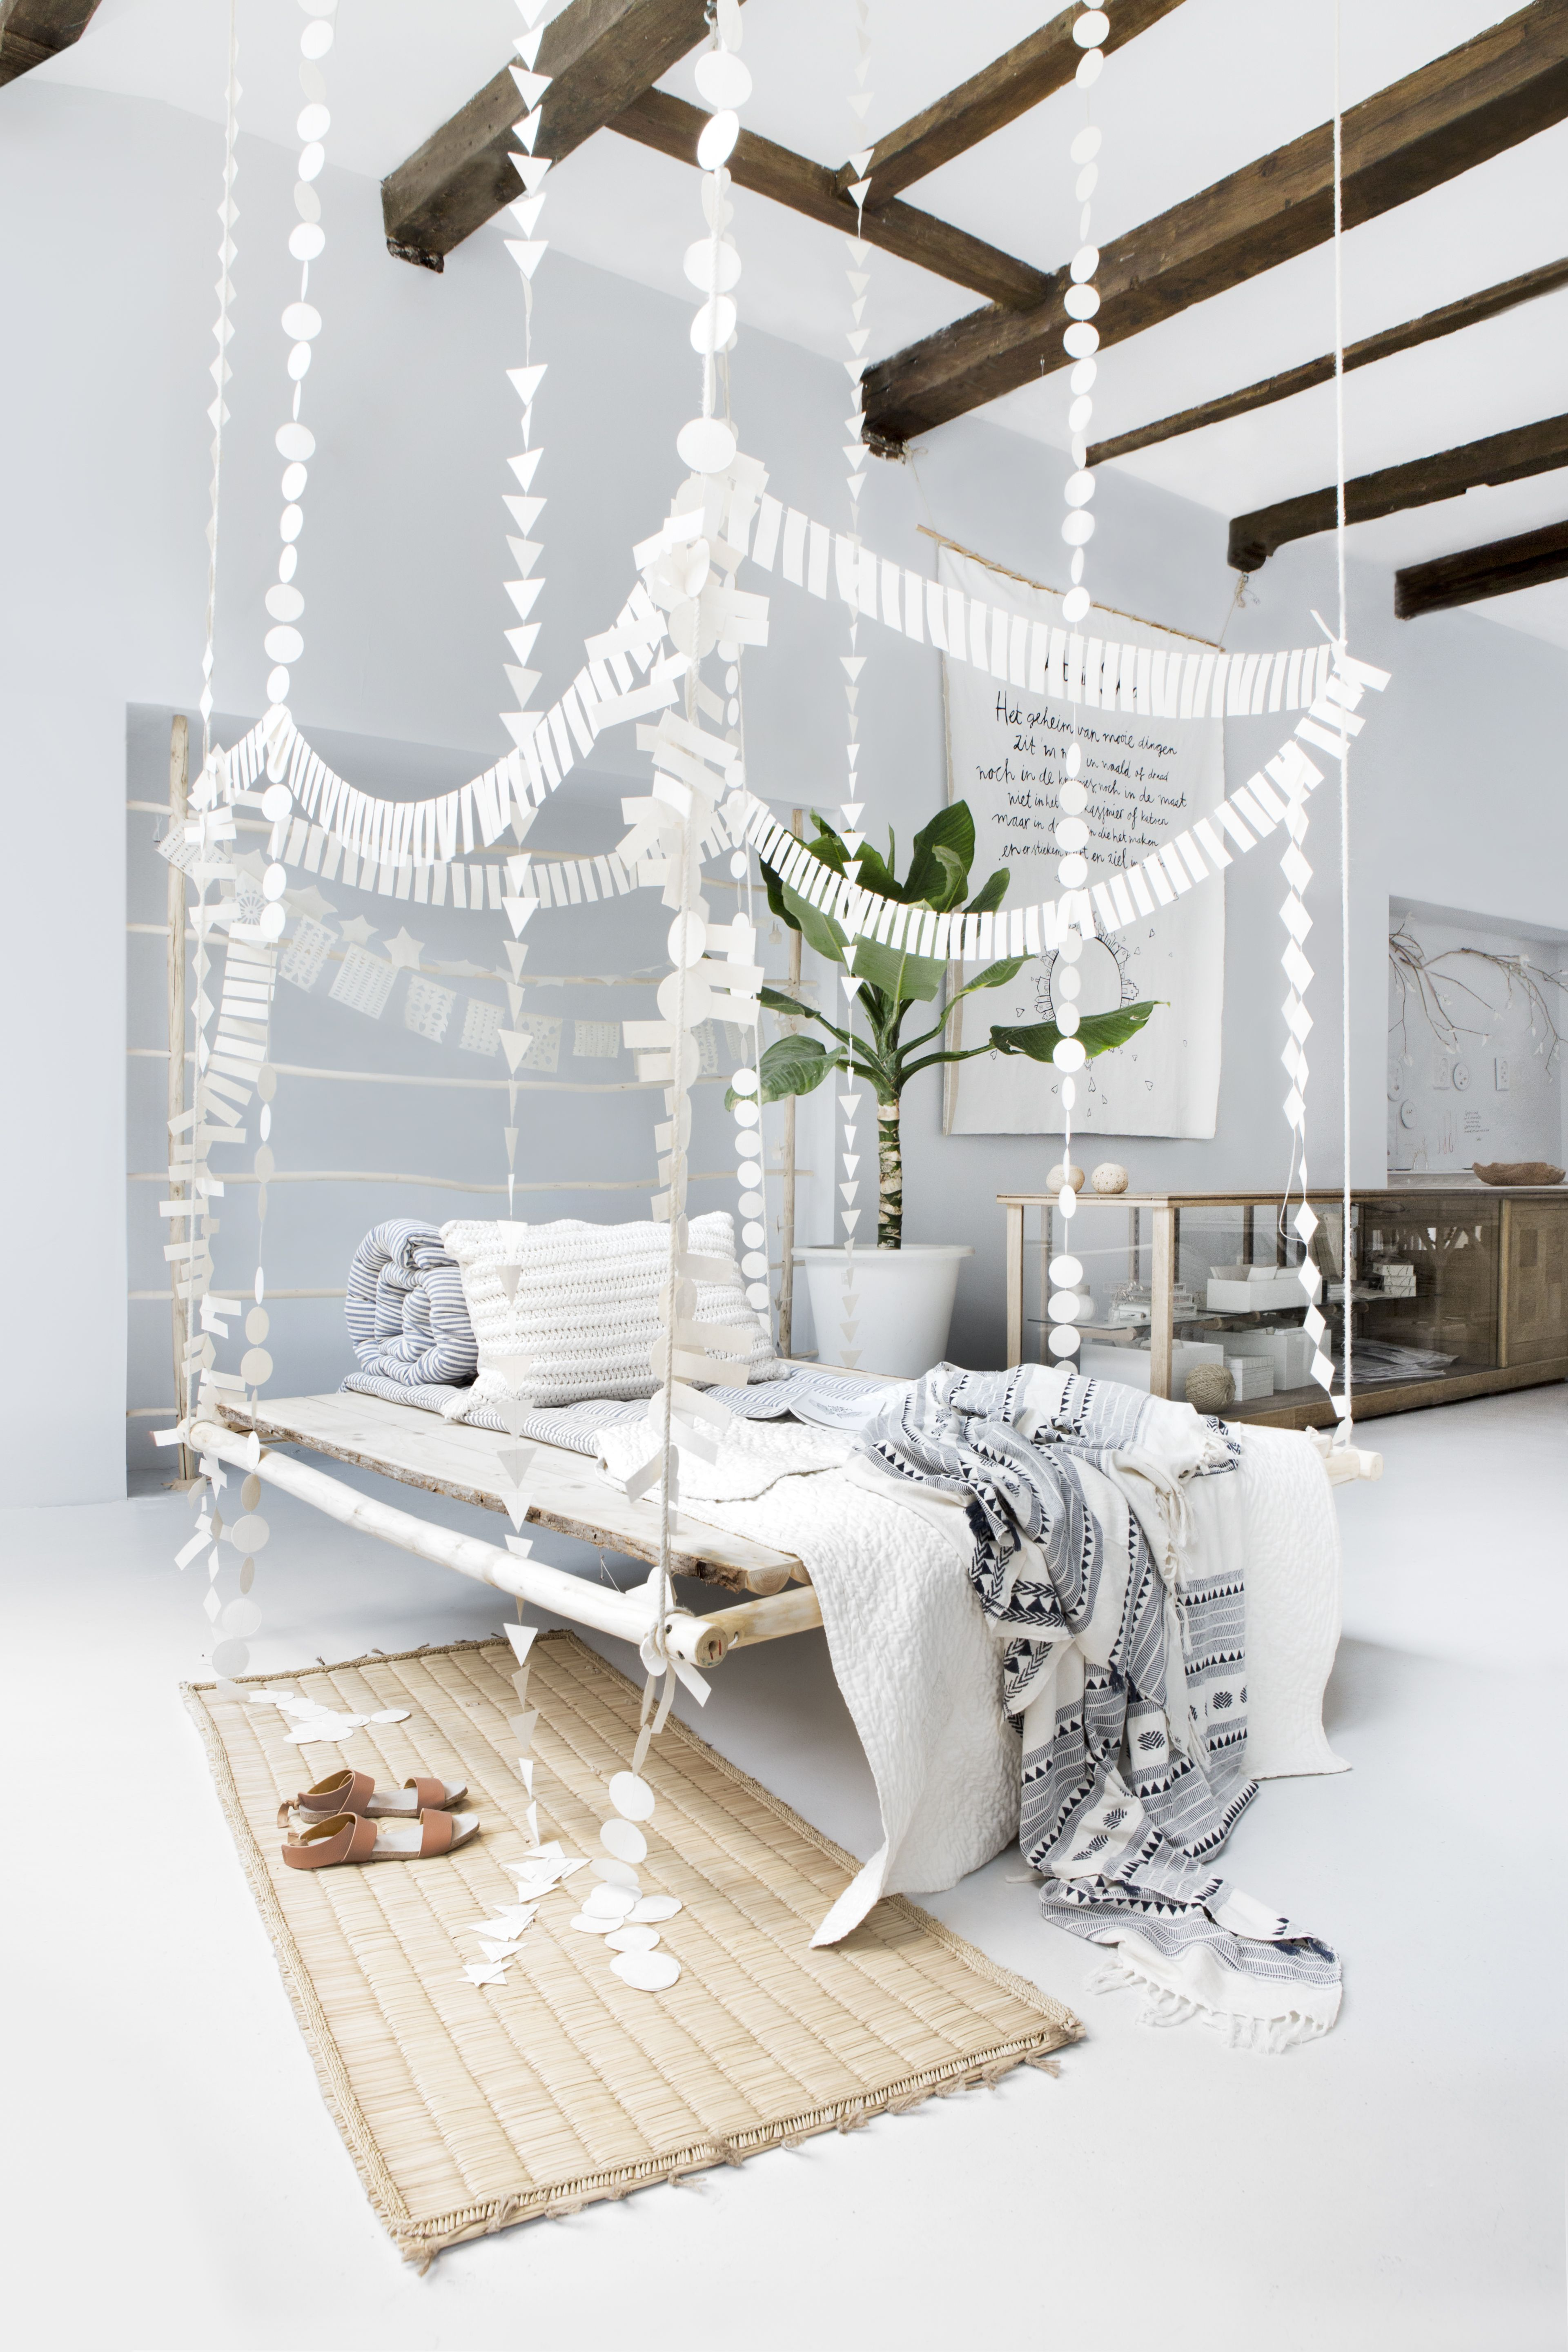 Pin by Kristy Simpson on Home | Pinterest | Atelier, Interiors and Room